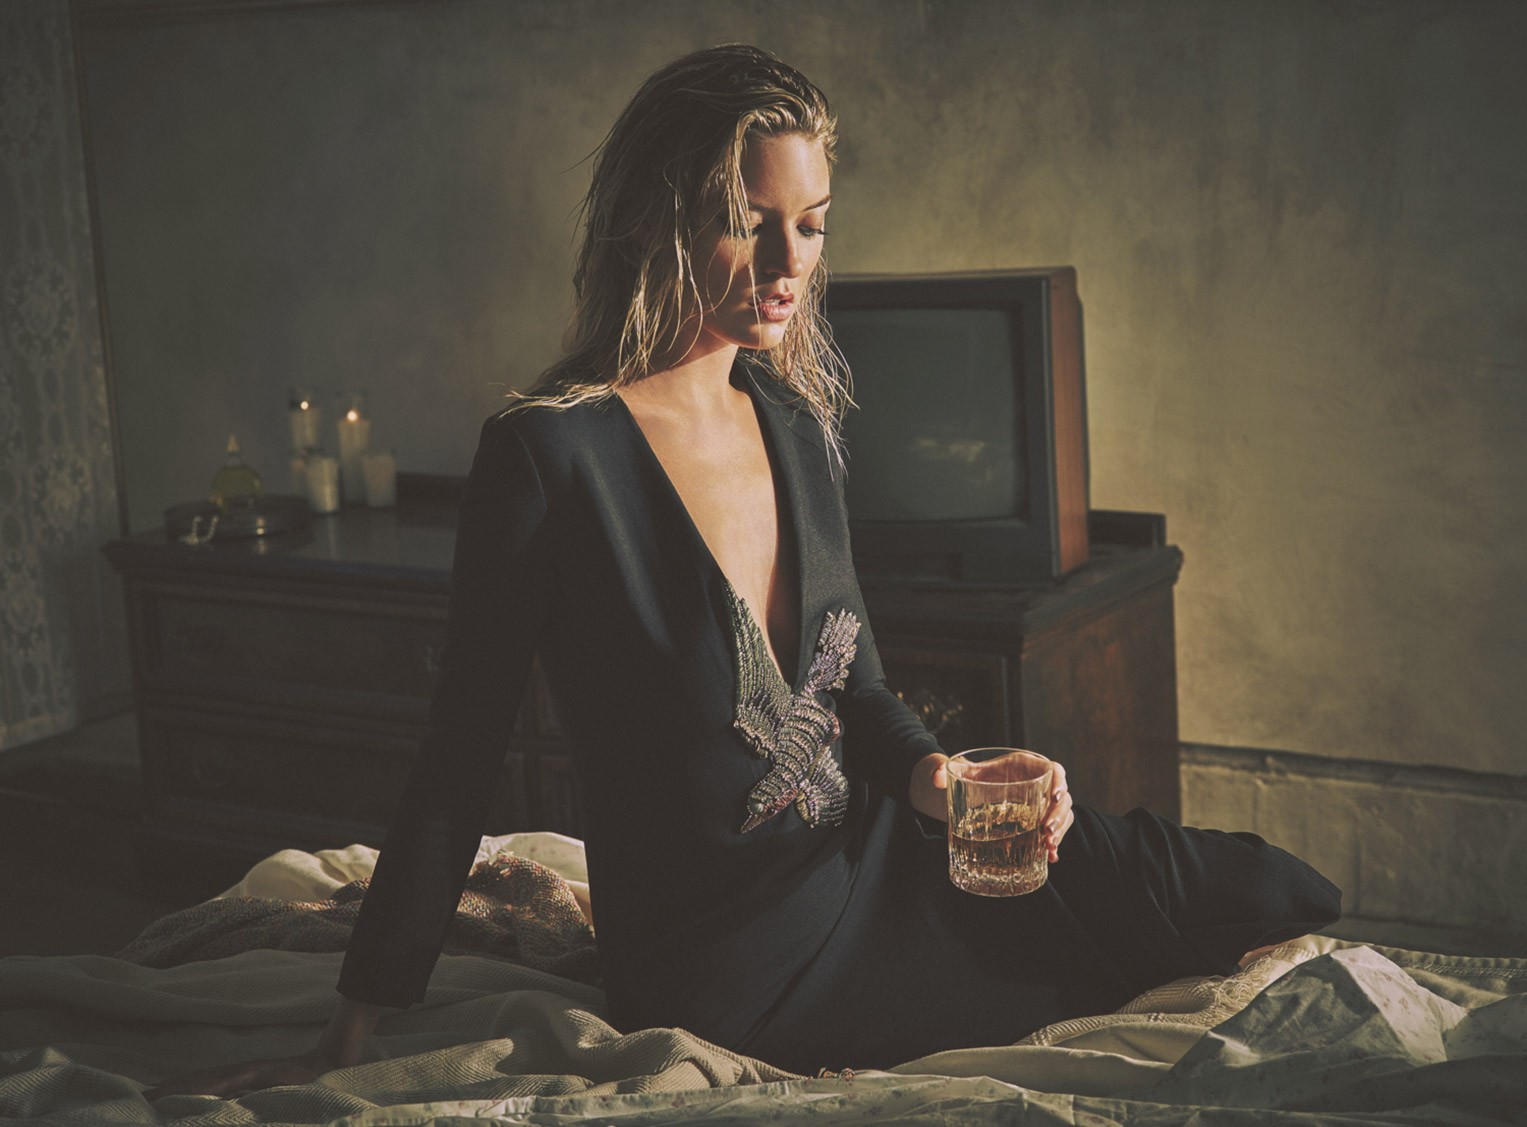 Martha Hunt by Guy Aroch - So It Goes fall/winter 2015